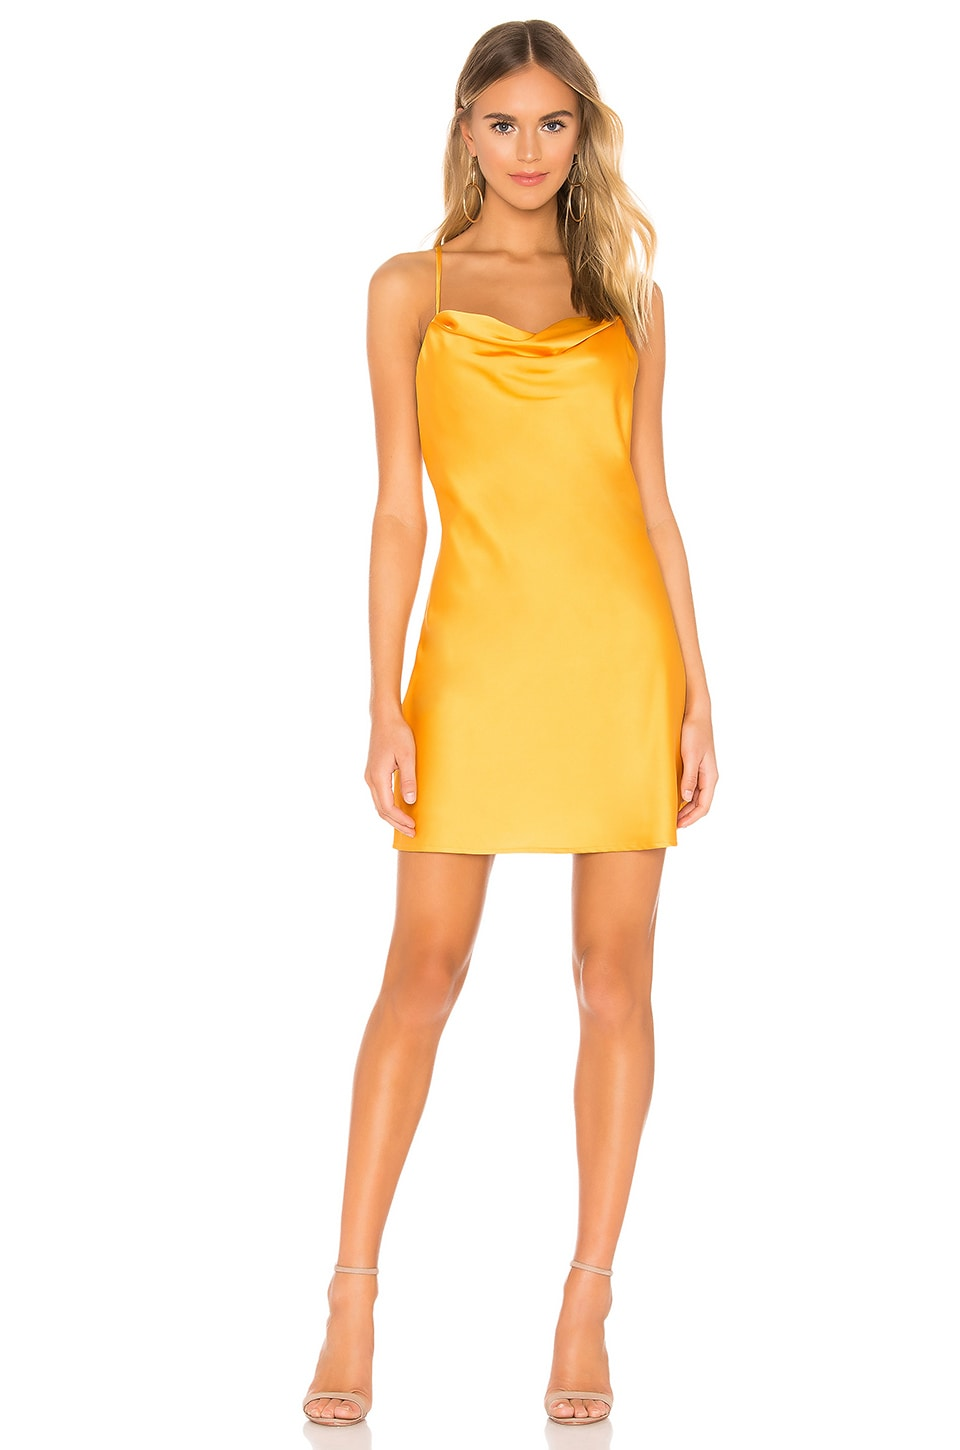 J.o.a. Dresses J.O.A. COWL NECK SLIP DRESS IN ORANGE.